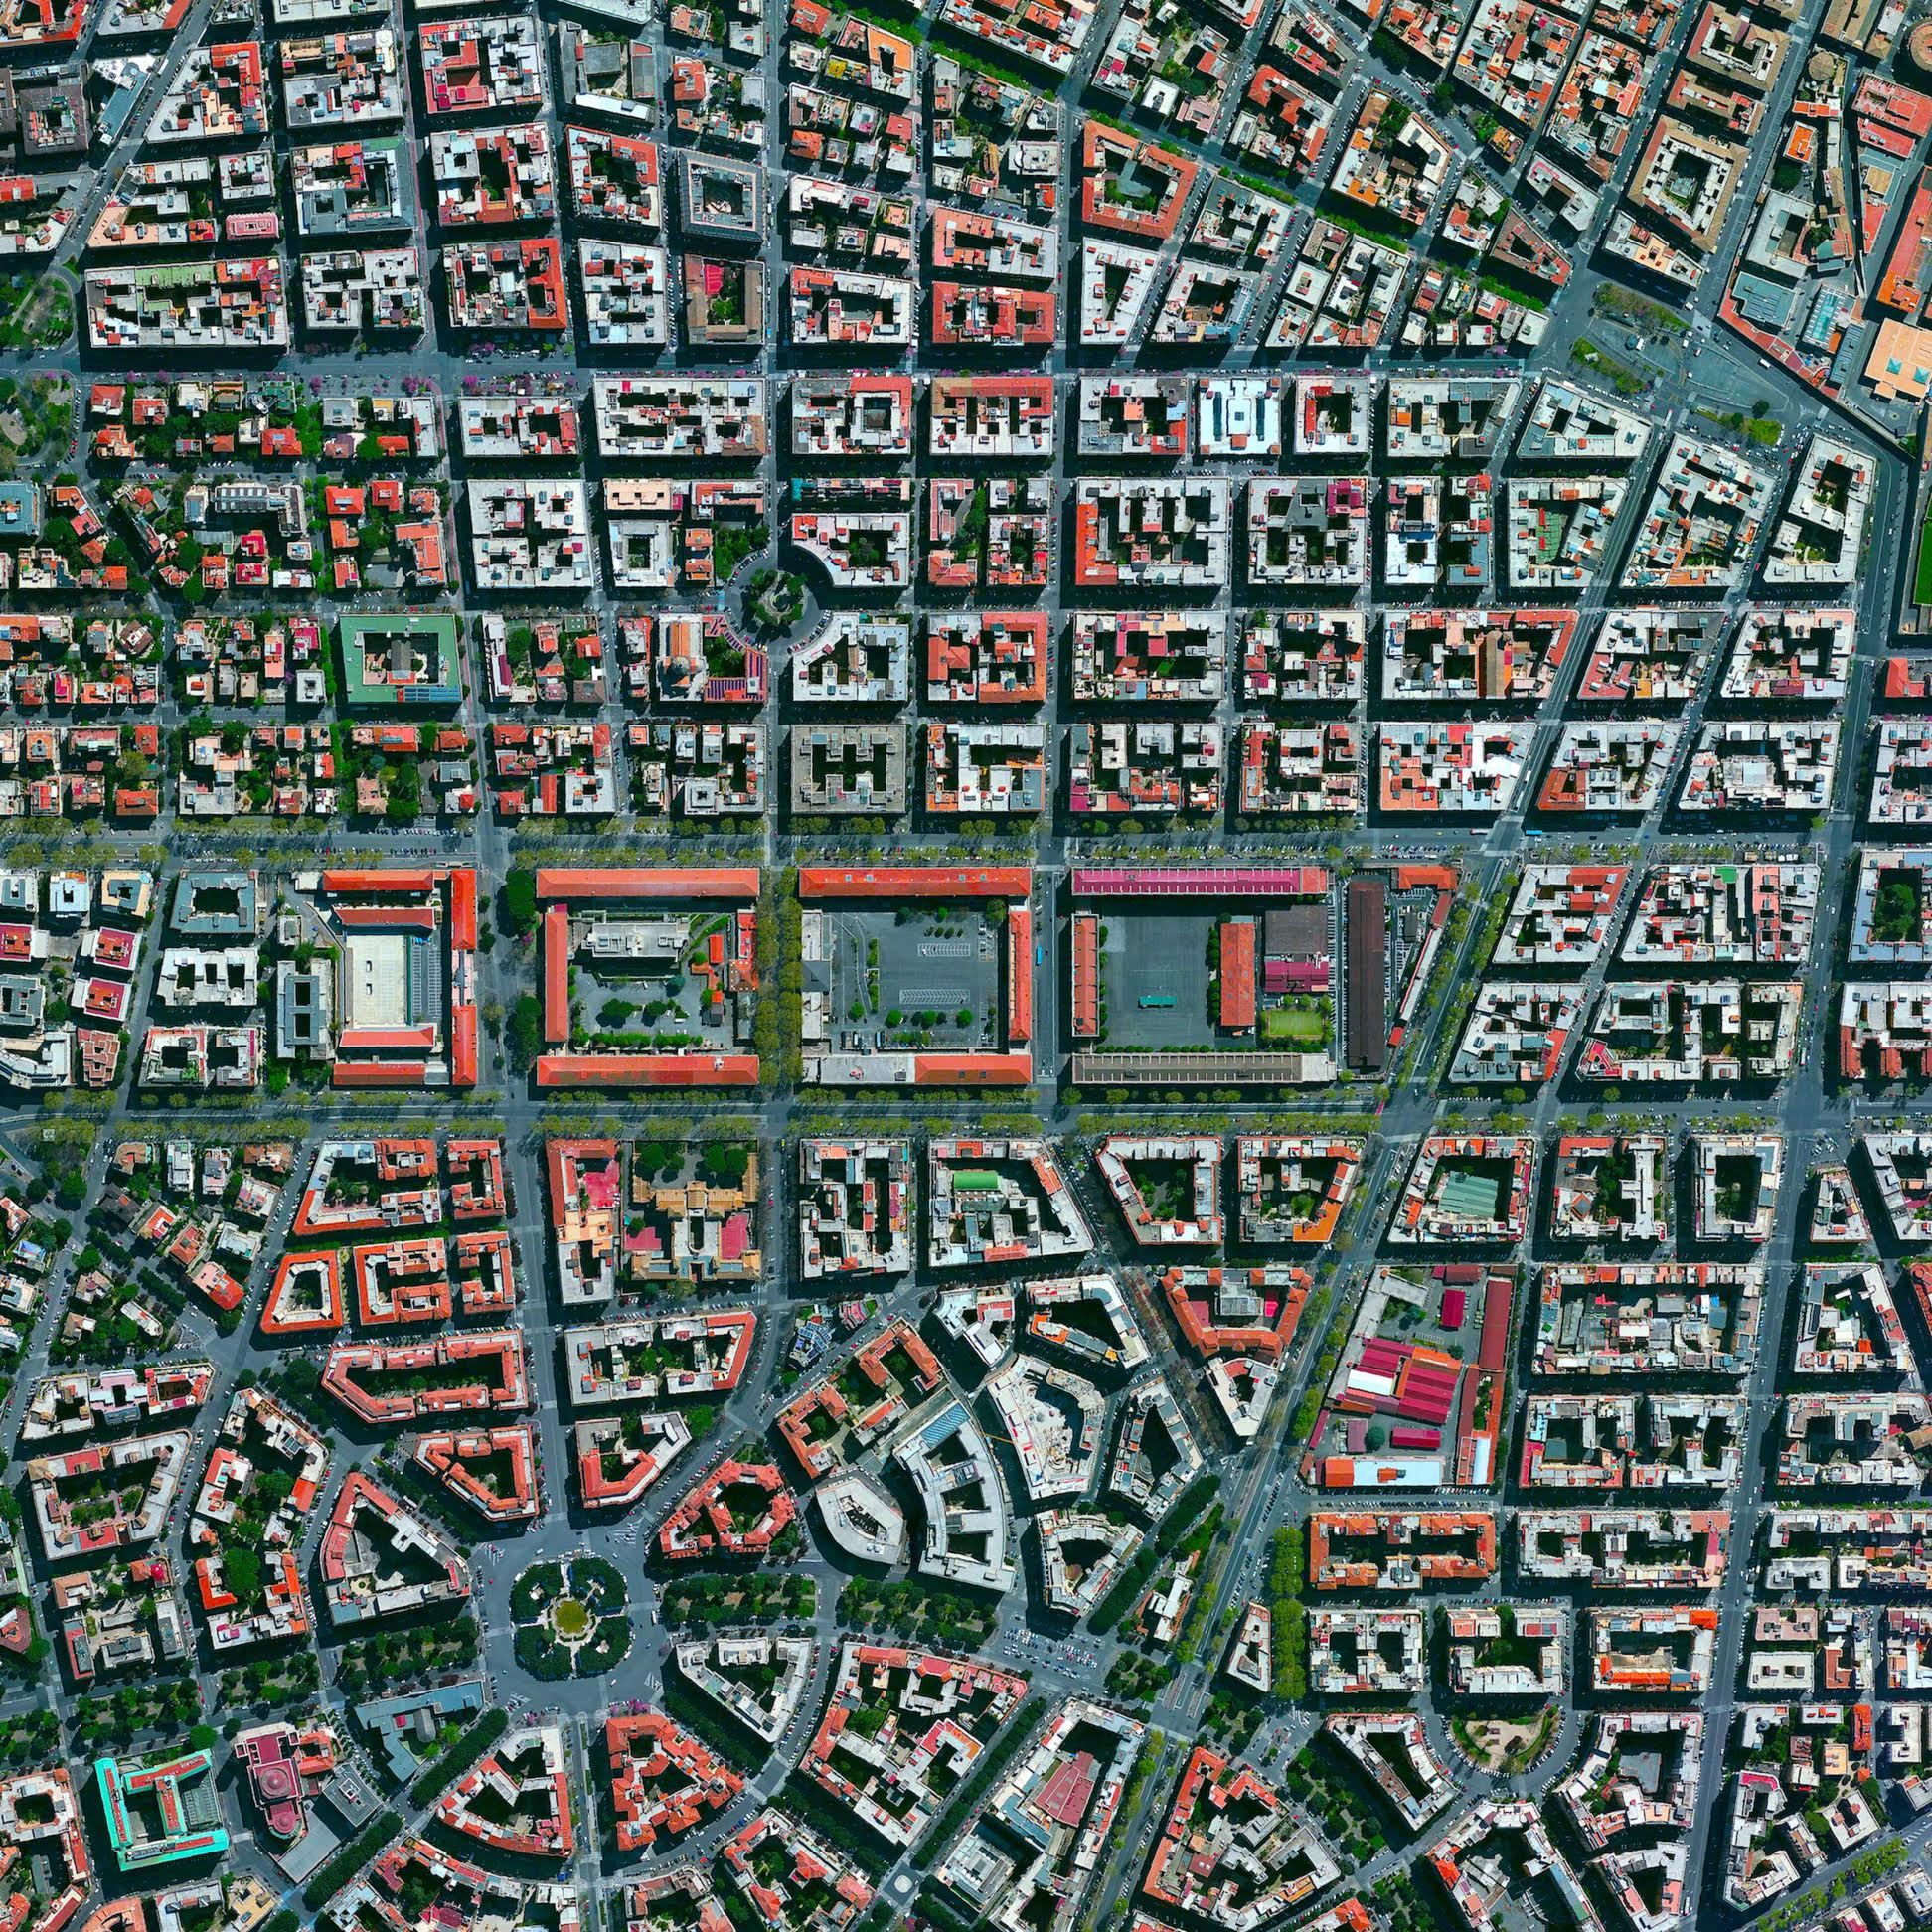 5/18/2016  Prati  Rome, Italy  41.9111647, 12.460427    Prati is a neighborhood located in center of Rome, Italy. The area borders the Vatican and contains the Via Cola di Rienzo, one of the most famous shopping streets in the entire city.